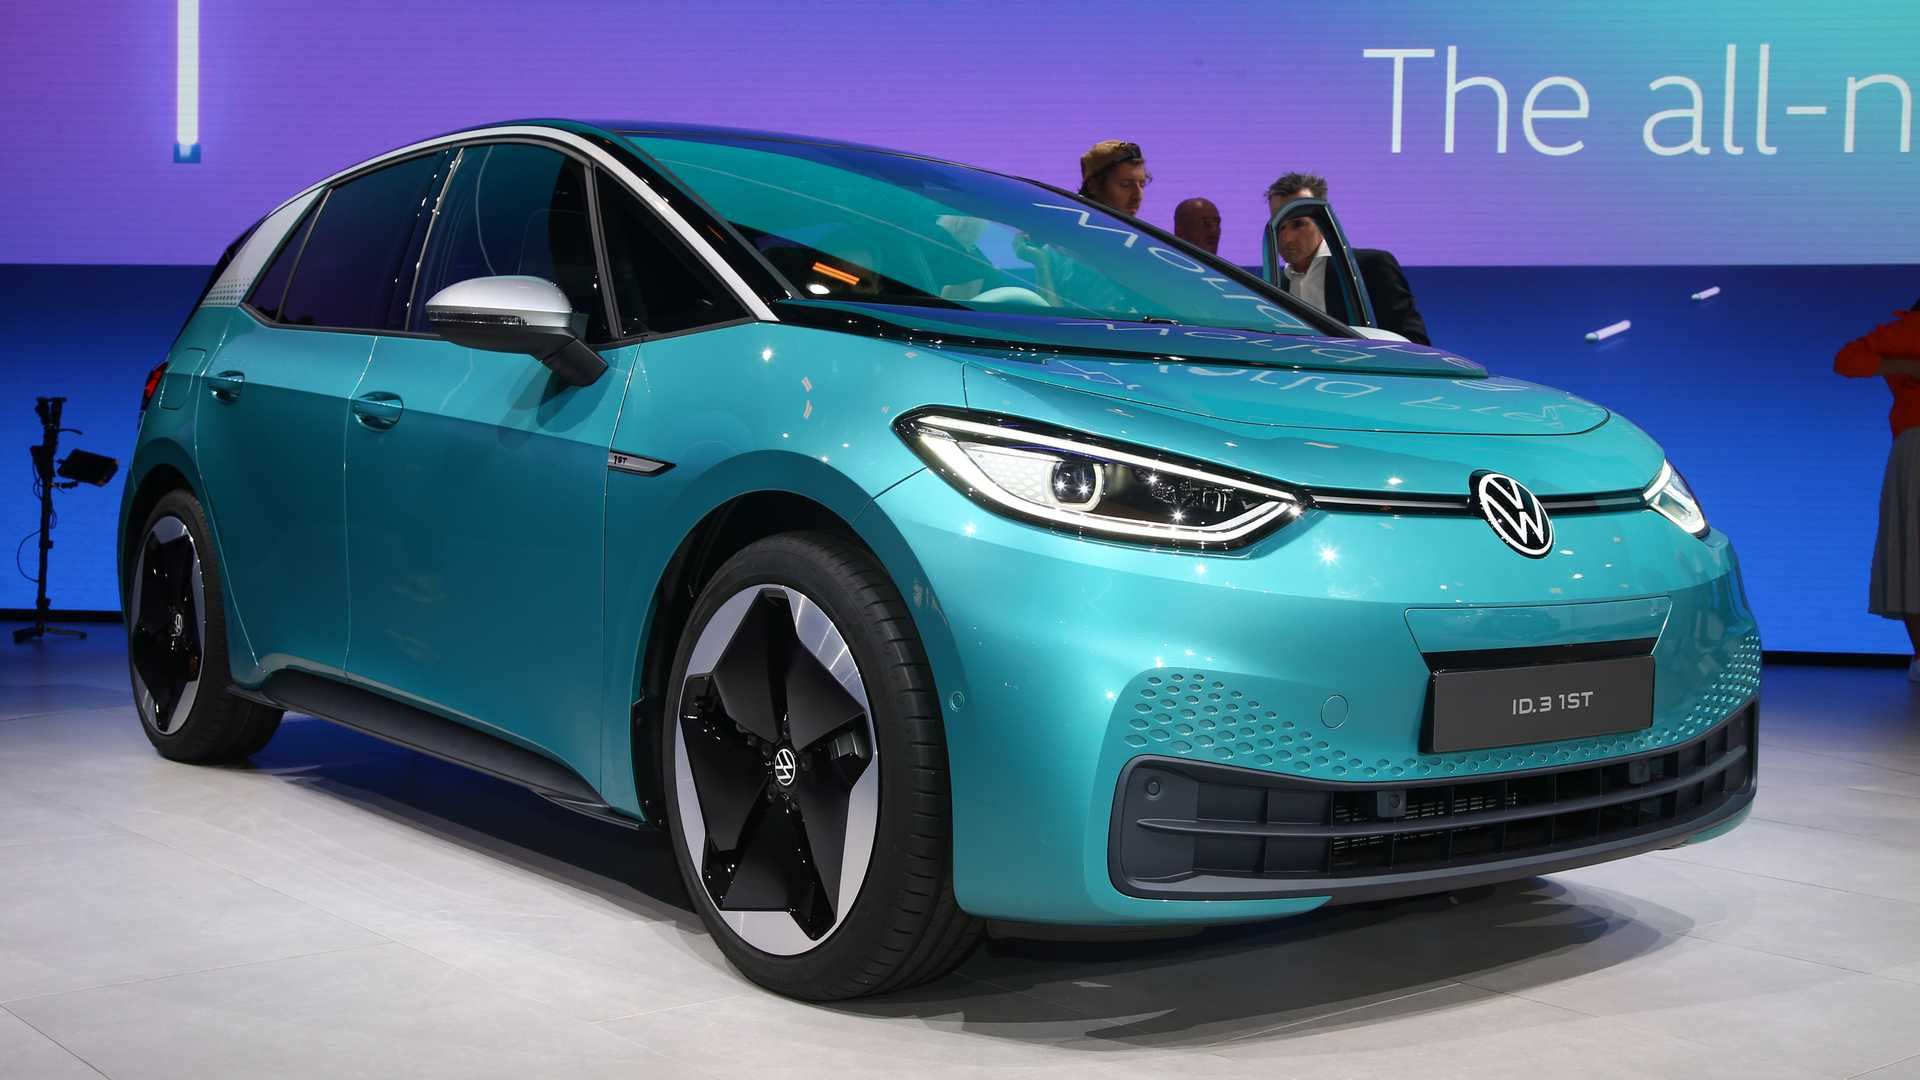 VW ID.3 Debuts As People's Electric Car With Up To 550 km Range